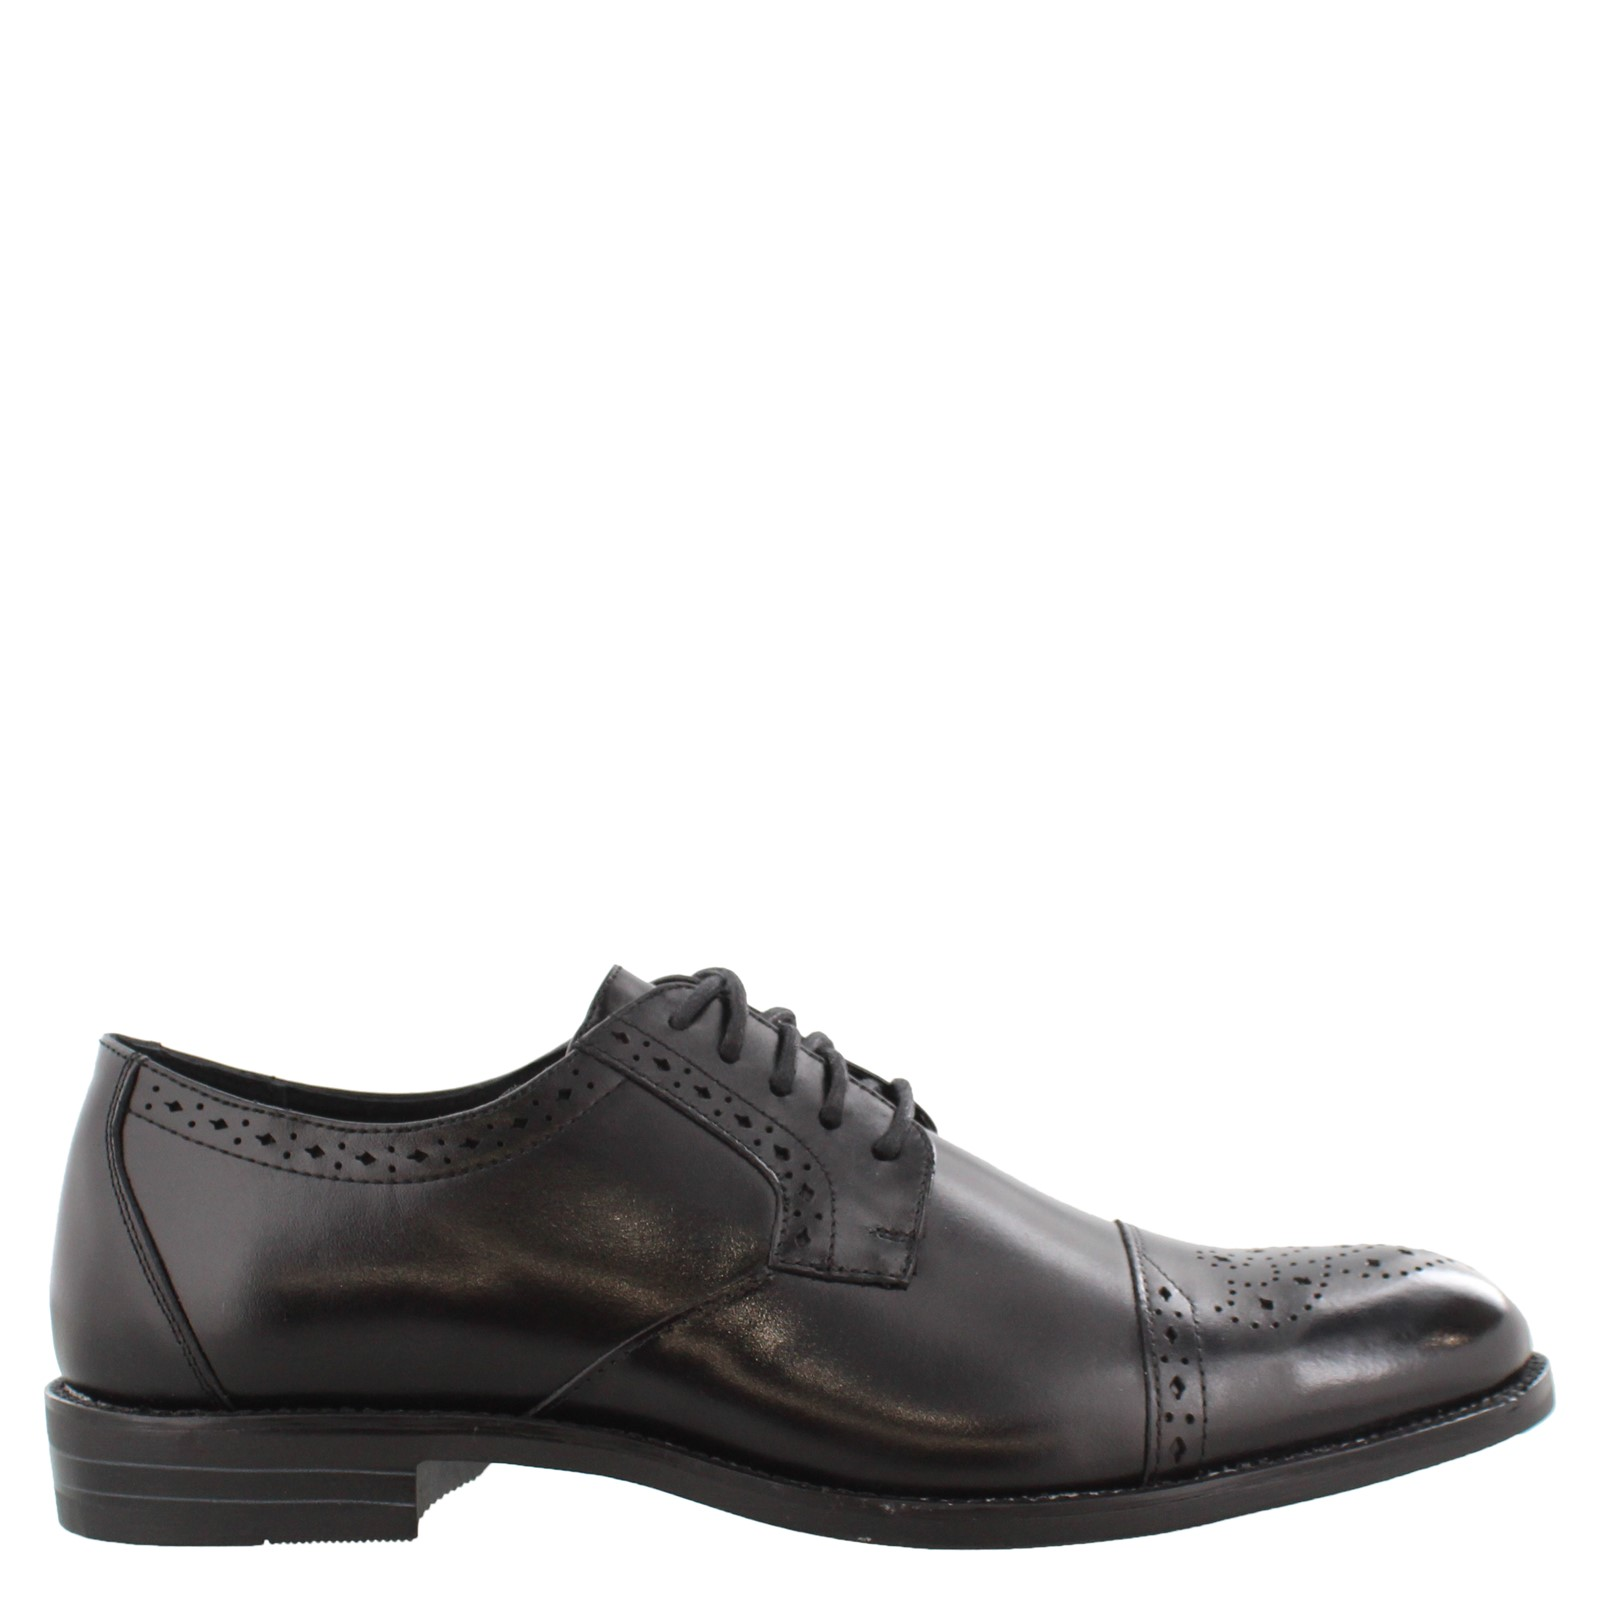 Men's Stacy Adams, Granville Cap Toe Oxford